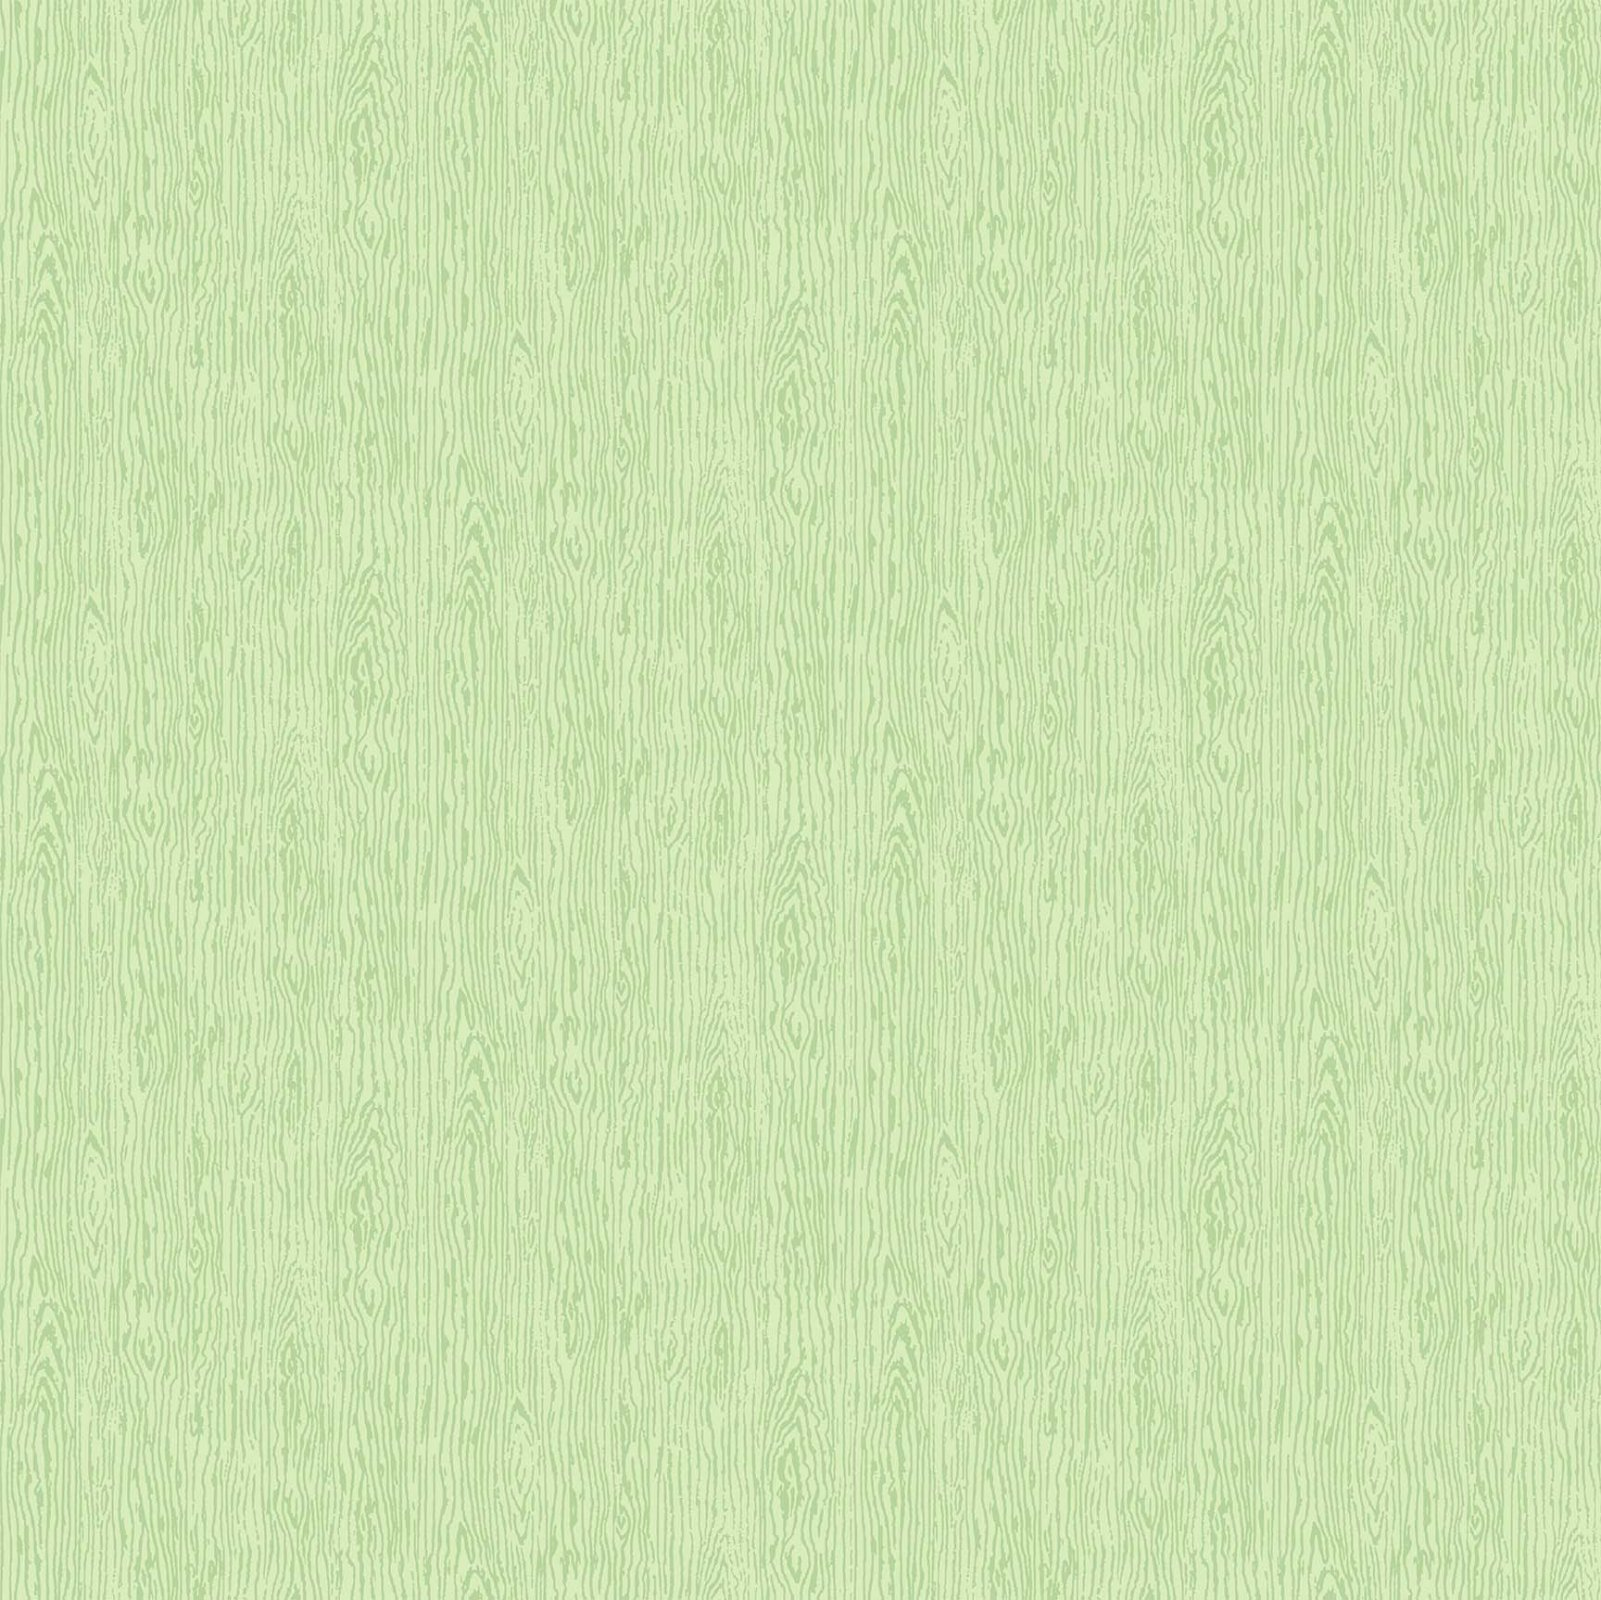 STAG AND THISTLE LIGHT GREEN 23310-72